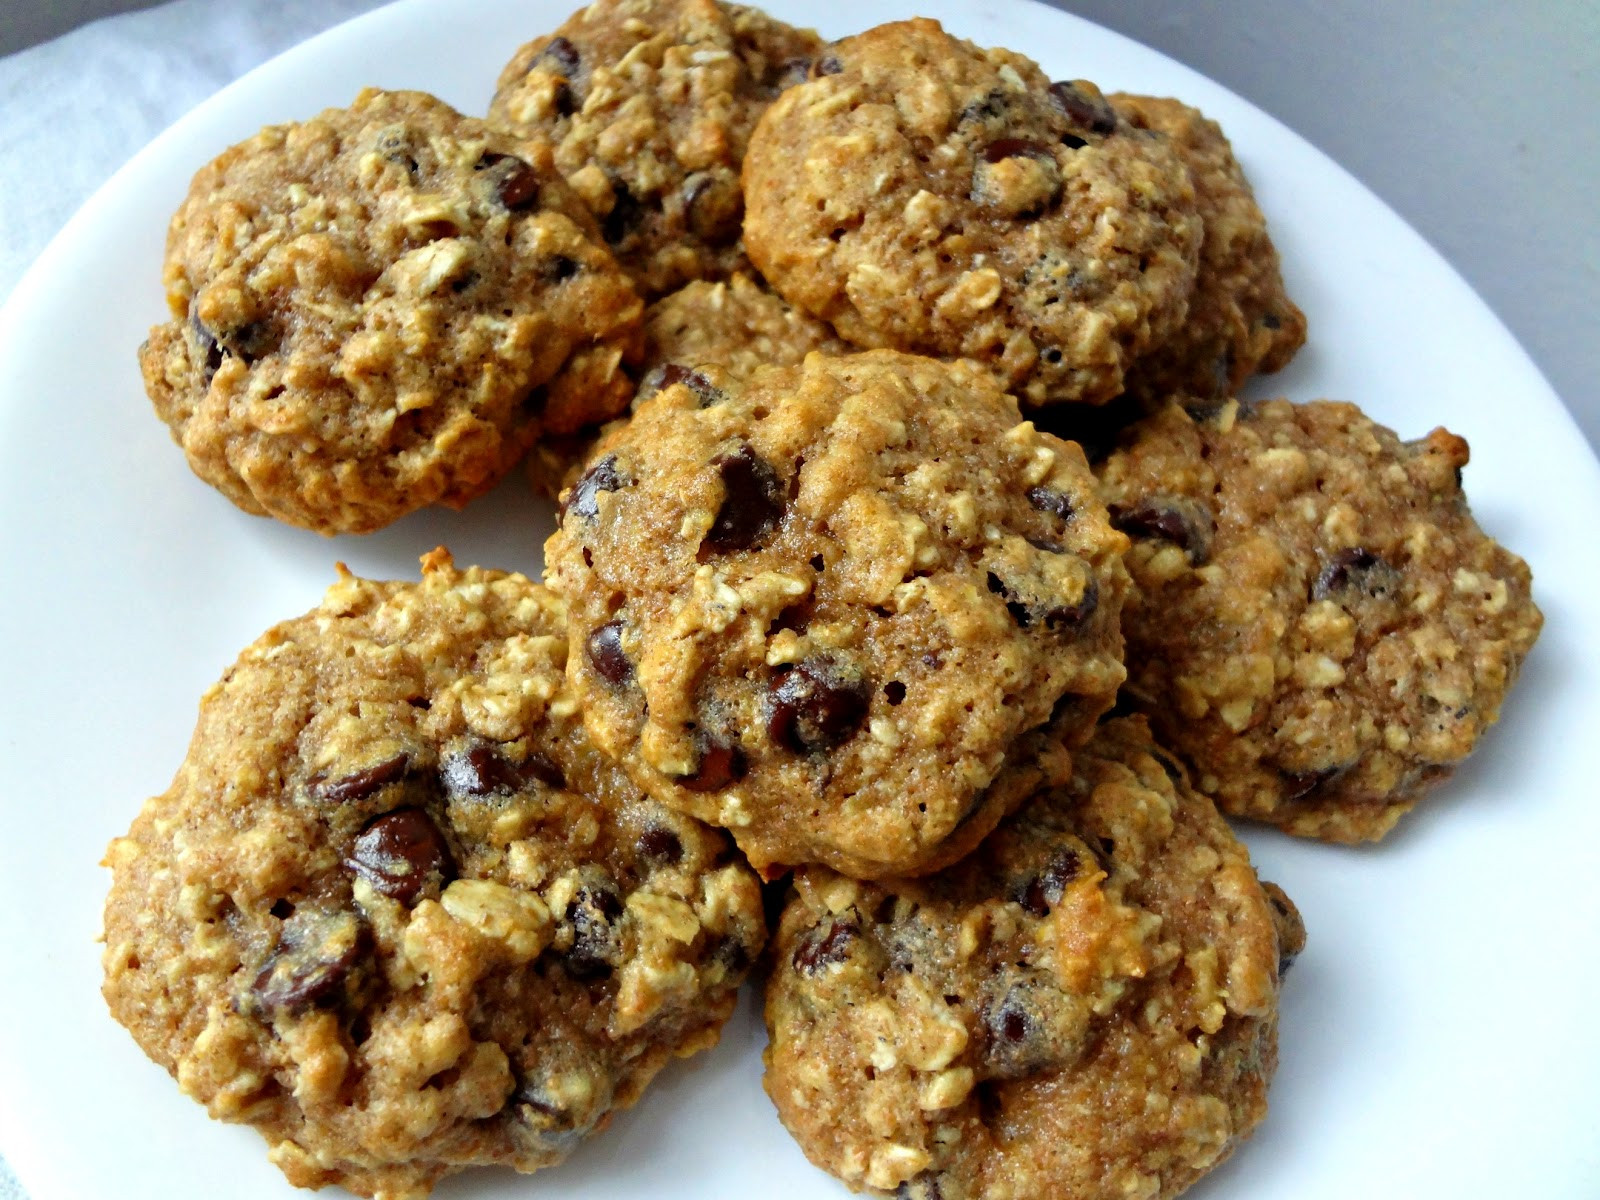 Oatmeal Chocolate Chip Cookies Healthy  The Cooking Actress Healthy Oatmeal Chocolate Chip Cookies